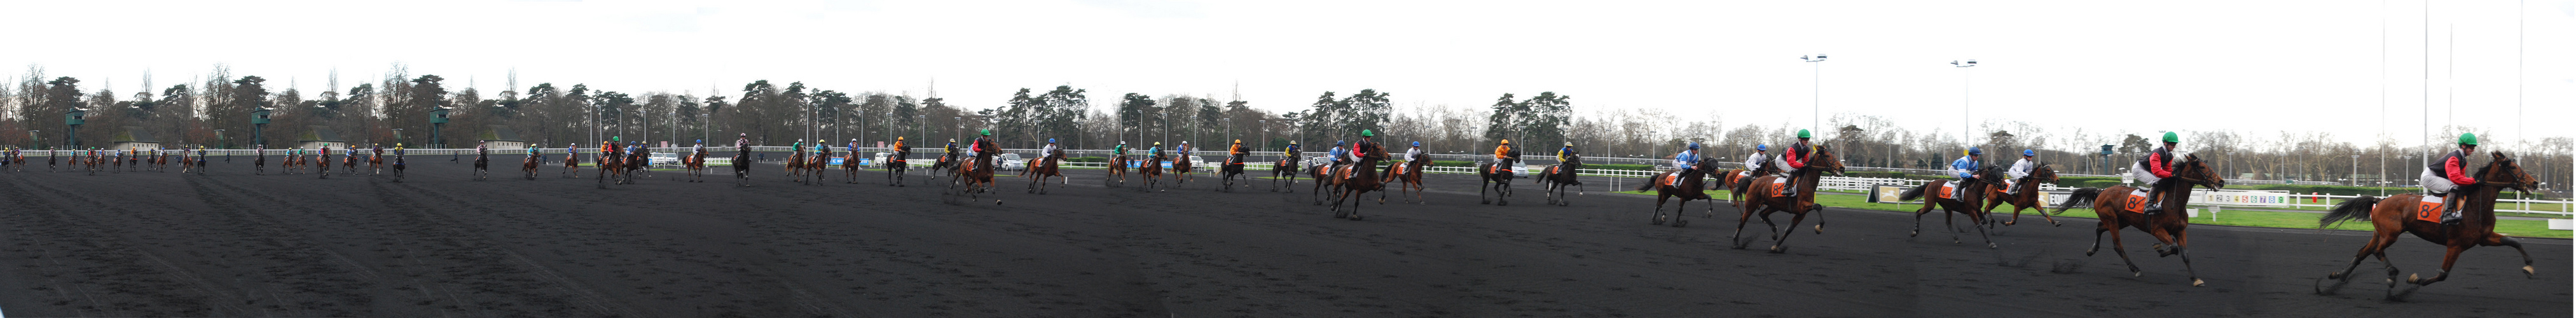 Immense vincennes